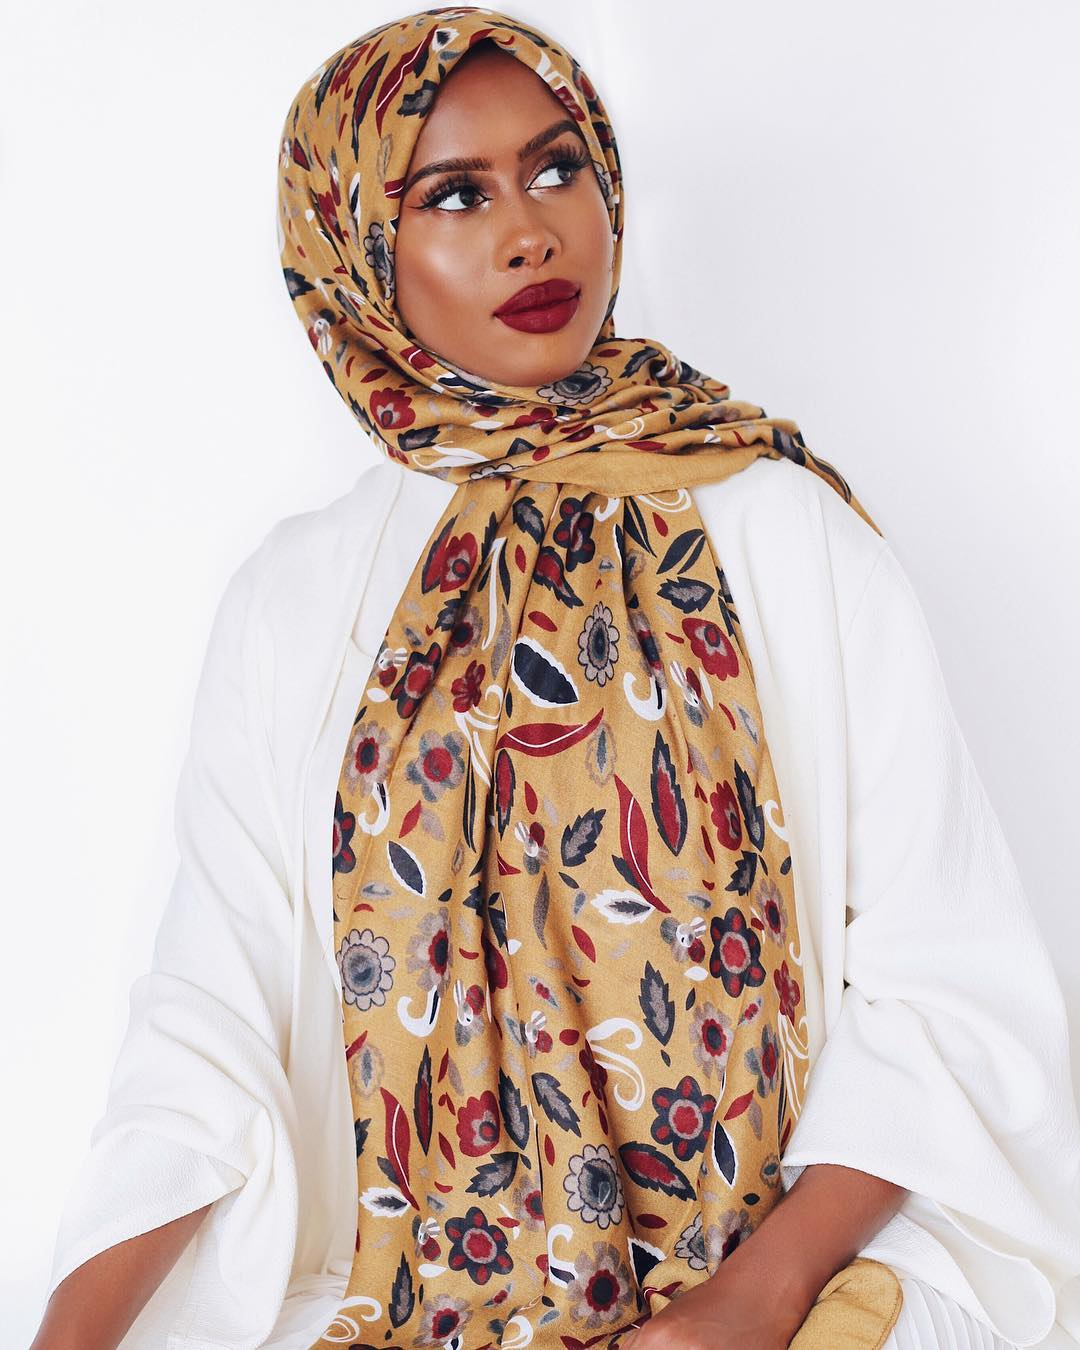 Fashionable hijab styles step by